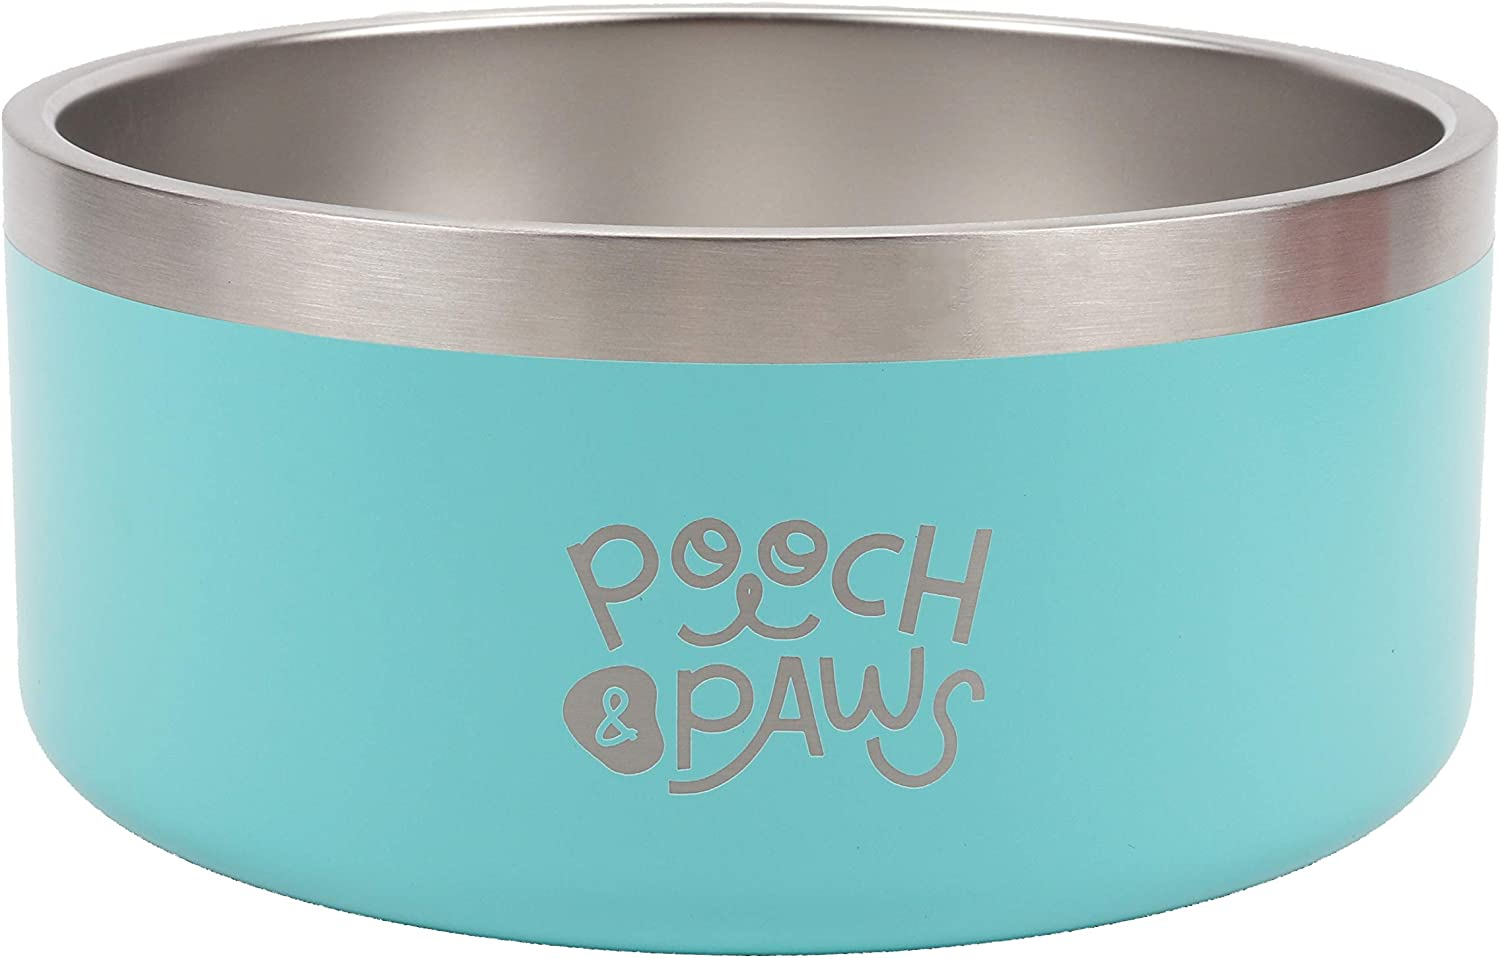 Pooch Paws Stainless Steel Non Minneapolis Mall Bowl Food Slip Feeder Max 46% OFF Dog